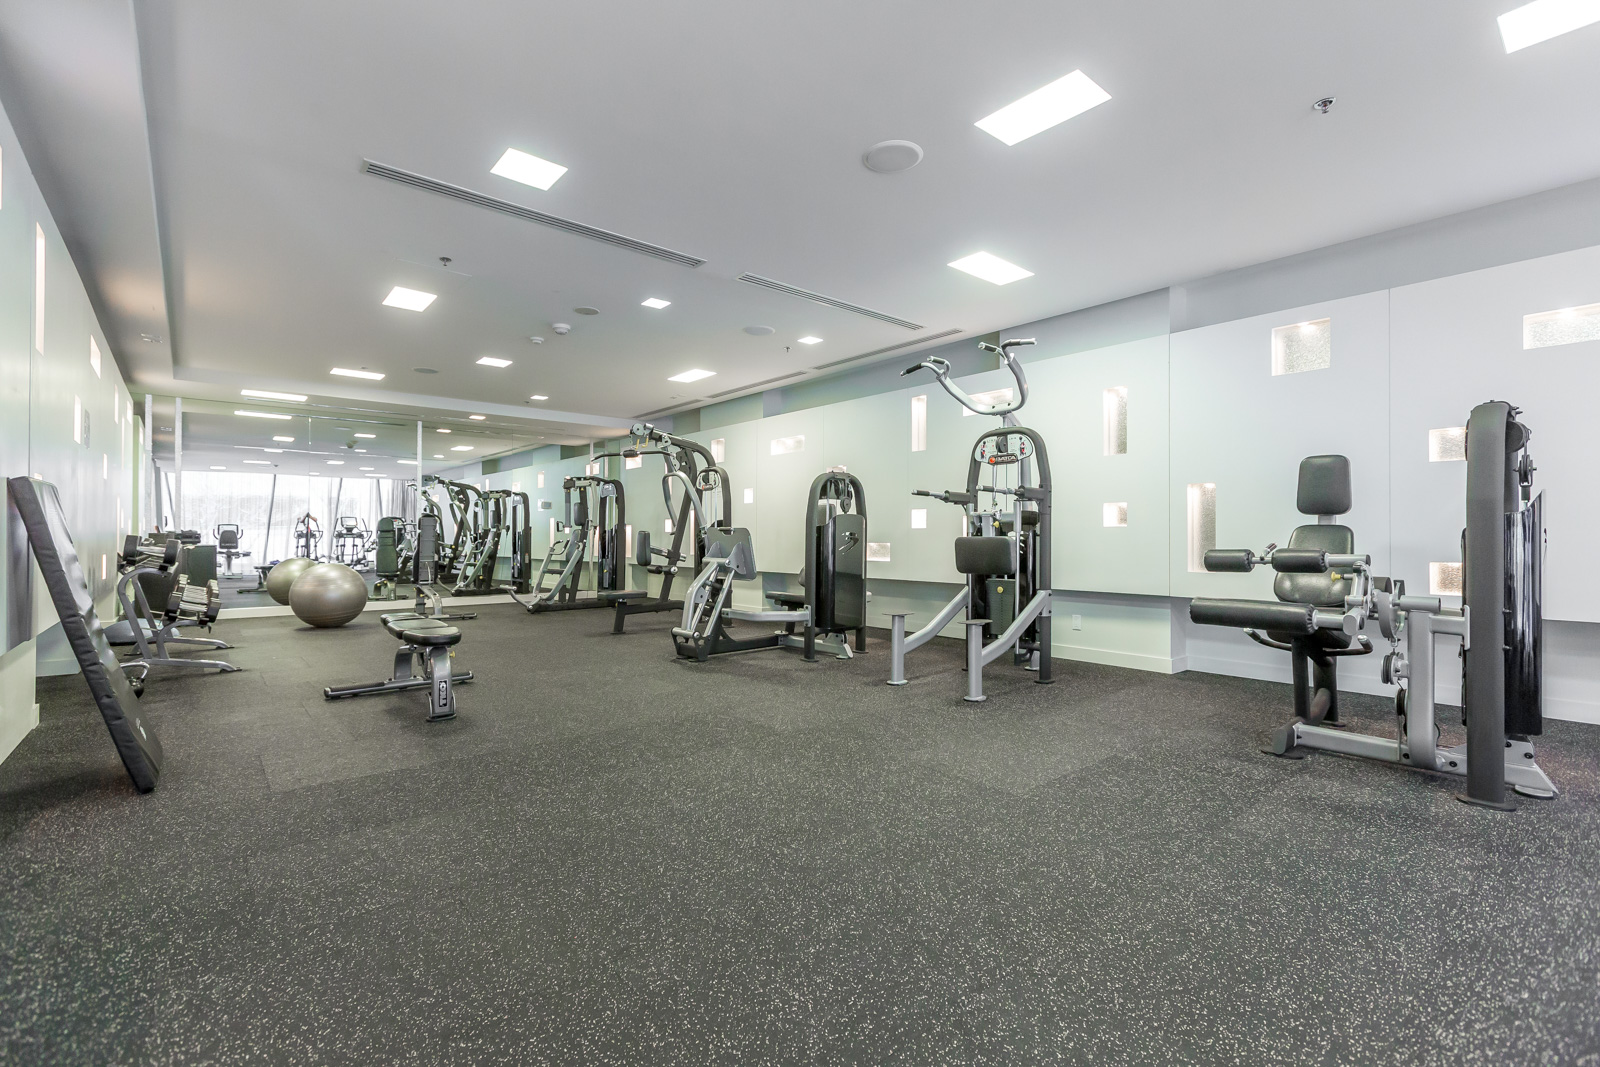 The Couture Condos gym and equipment